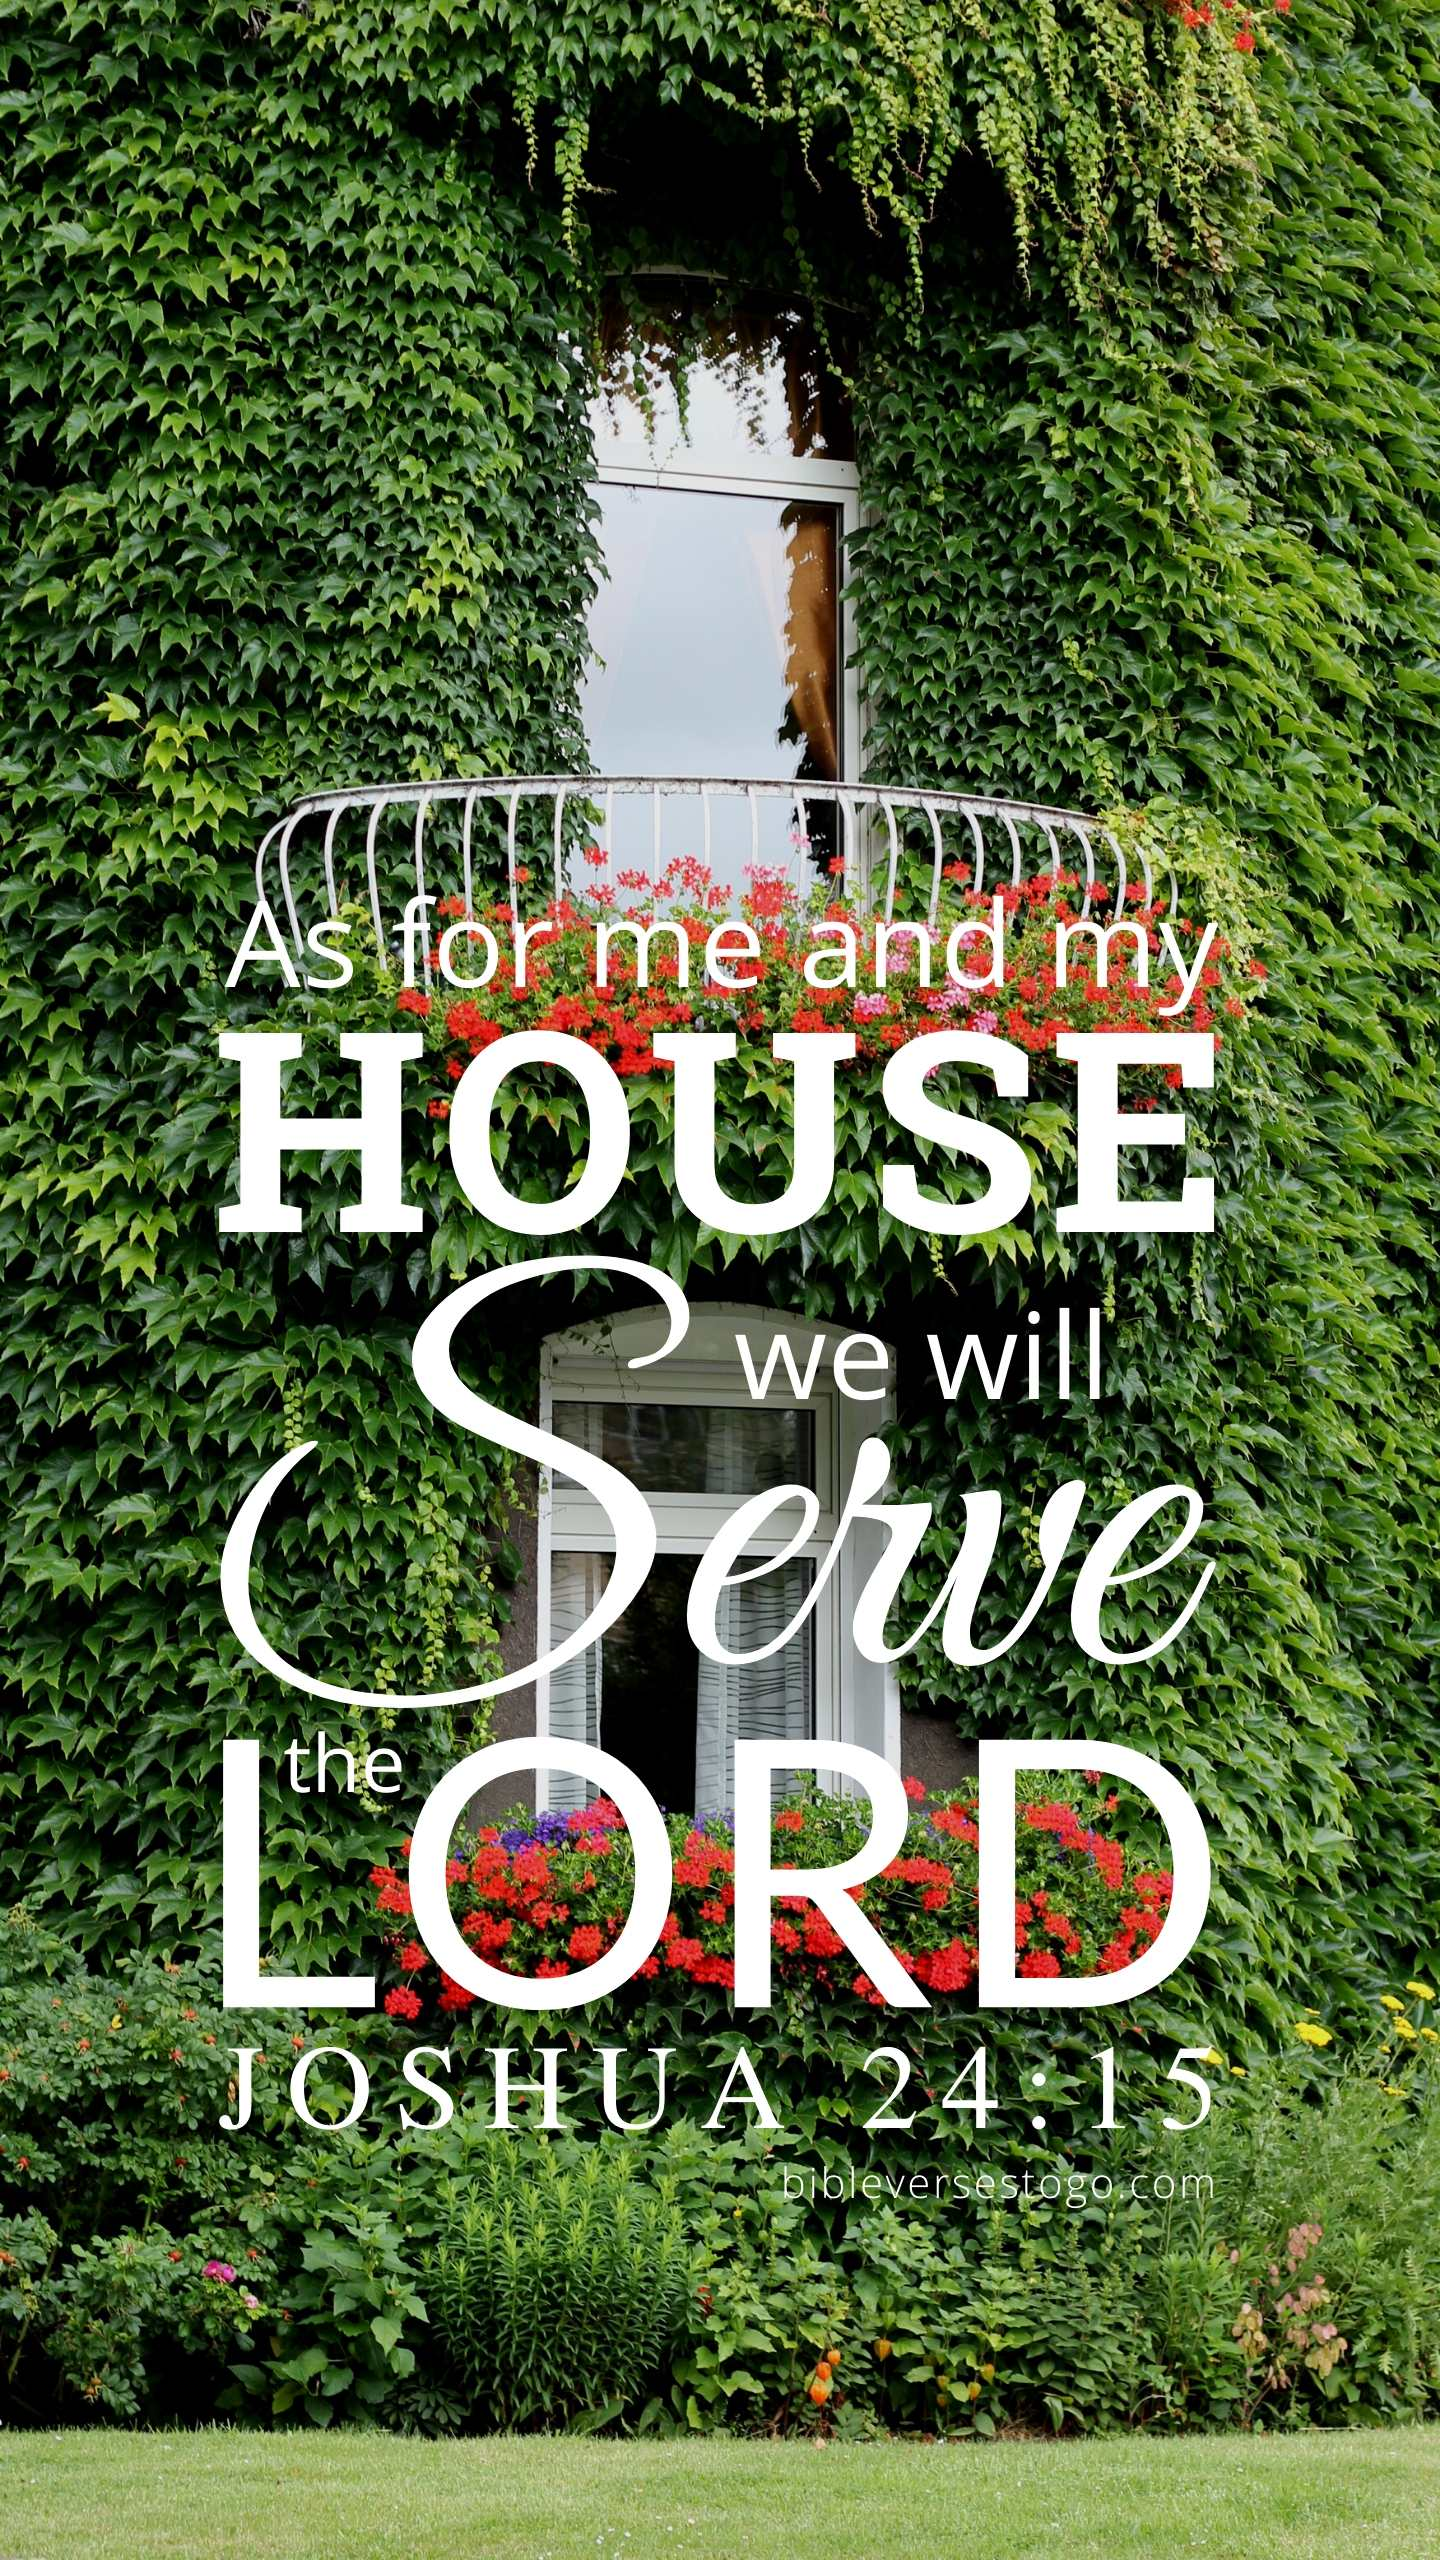 Christian Wallpaper - Ivy House Joshua 24:15